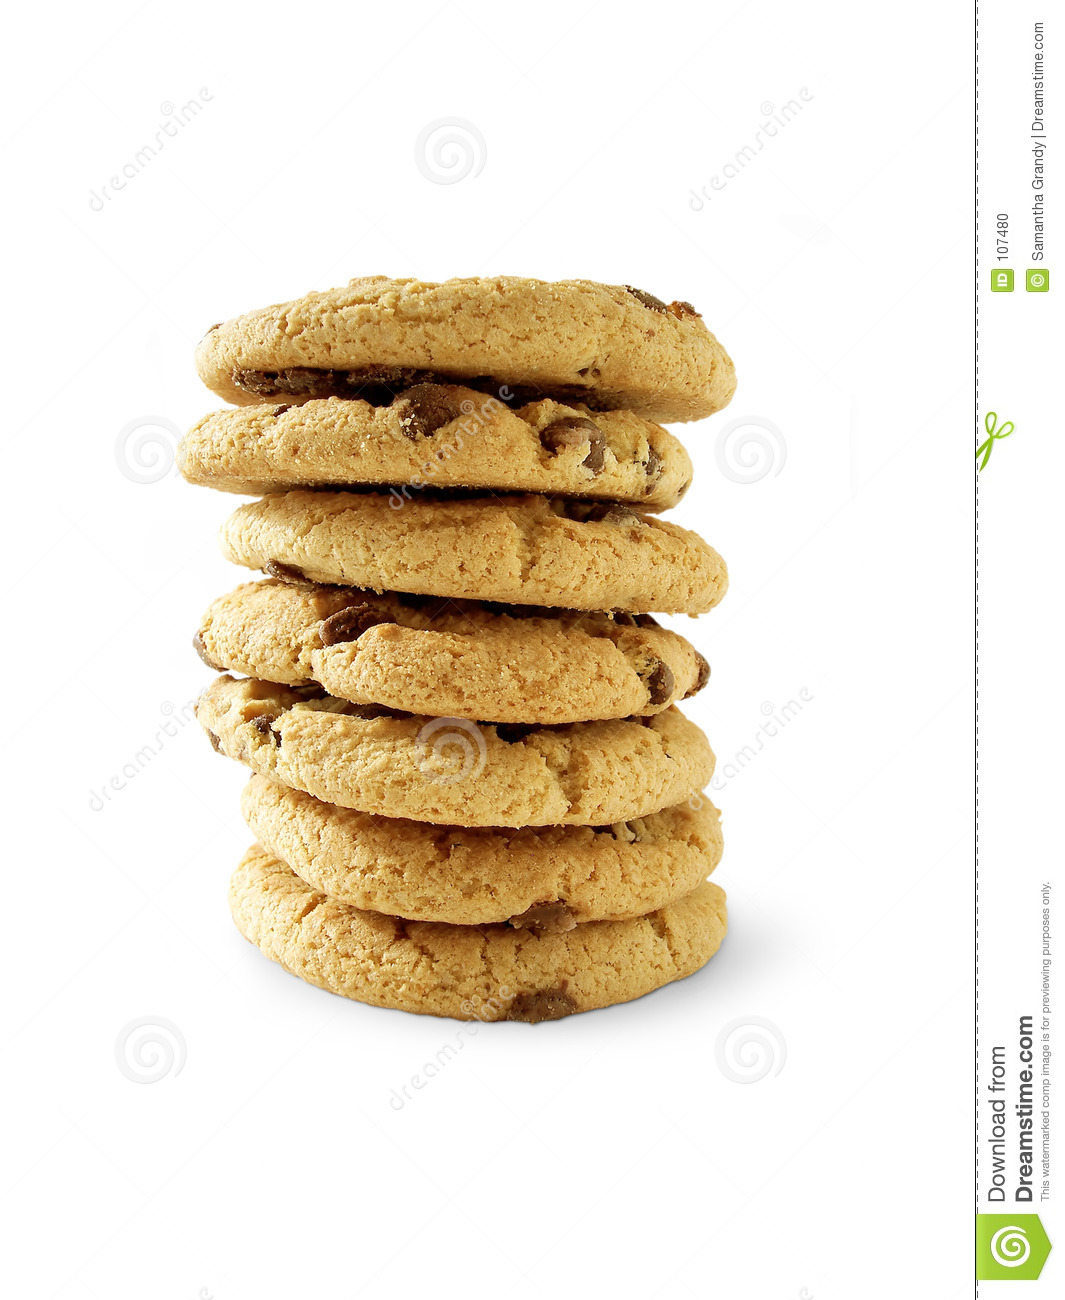 Download Choc Chip Cookies 6 (paht Included) Stock Photo - Image of fatty, dessert: 107480